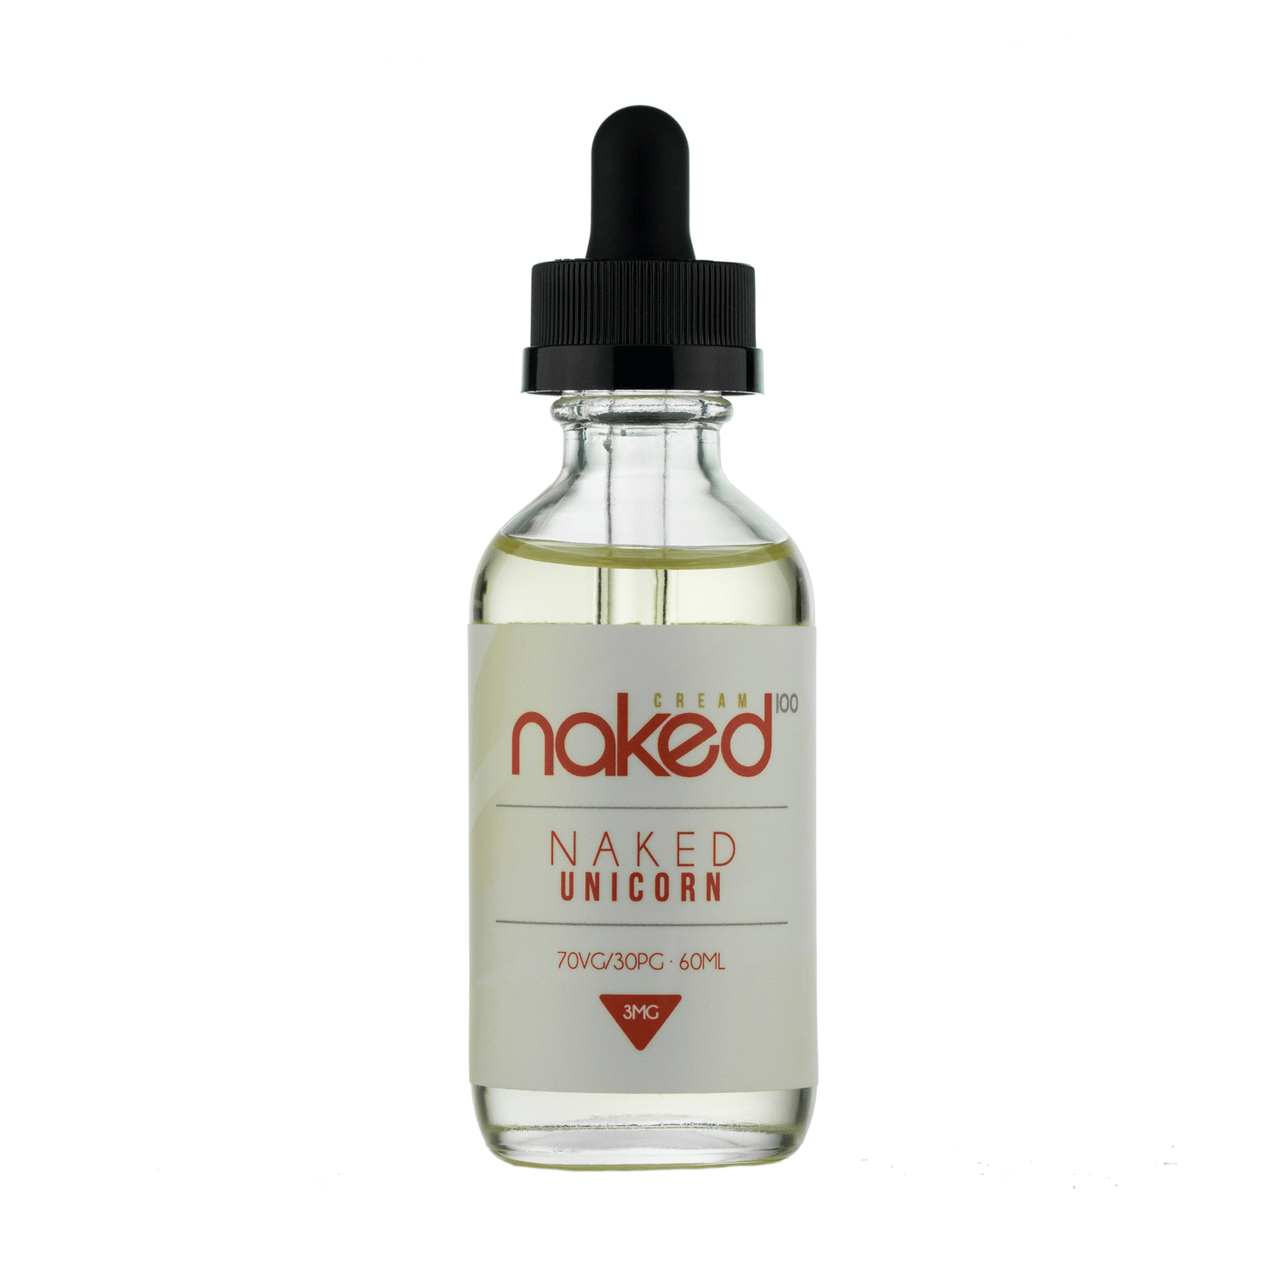 NAKED 100 Unicorn 60ml Ejuice 3mg